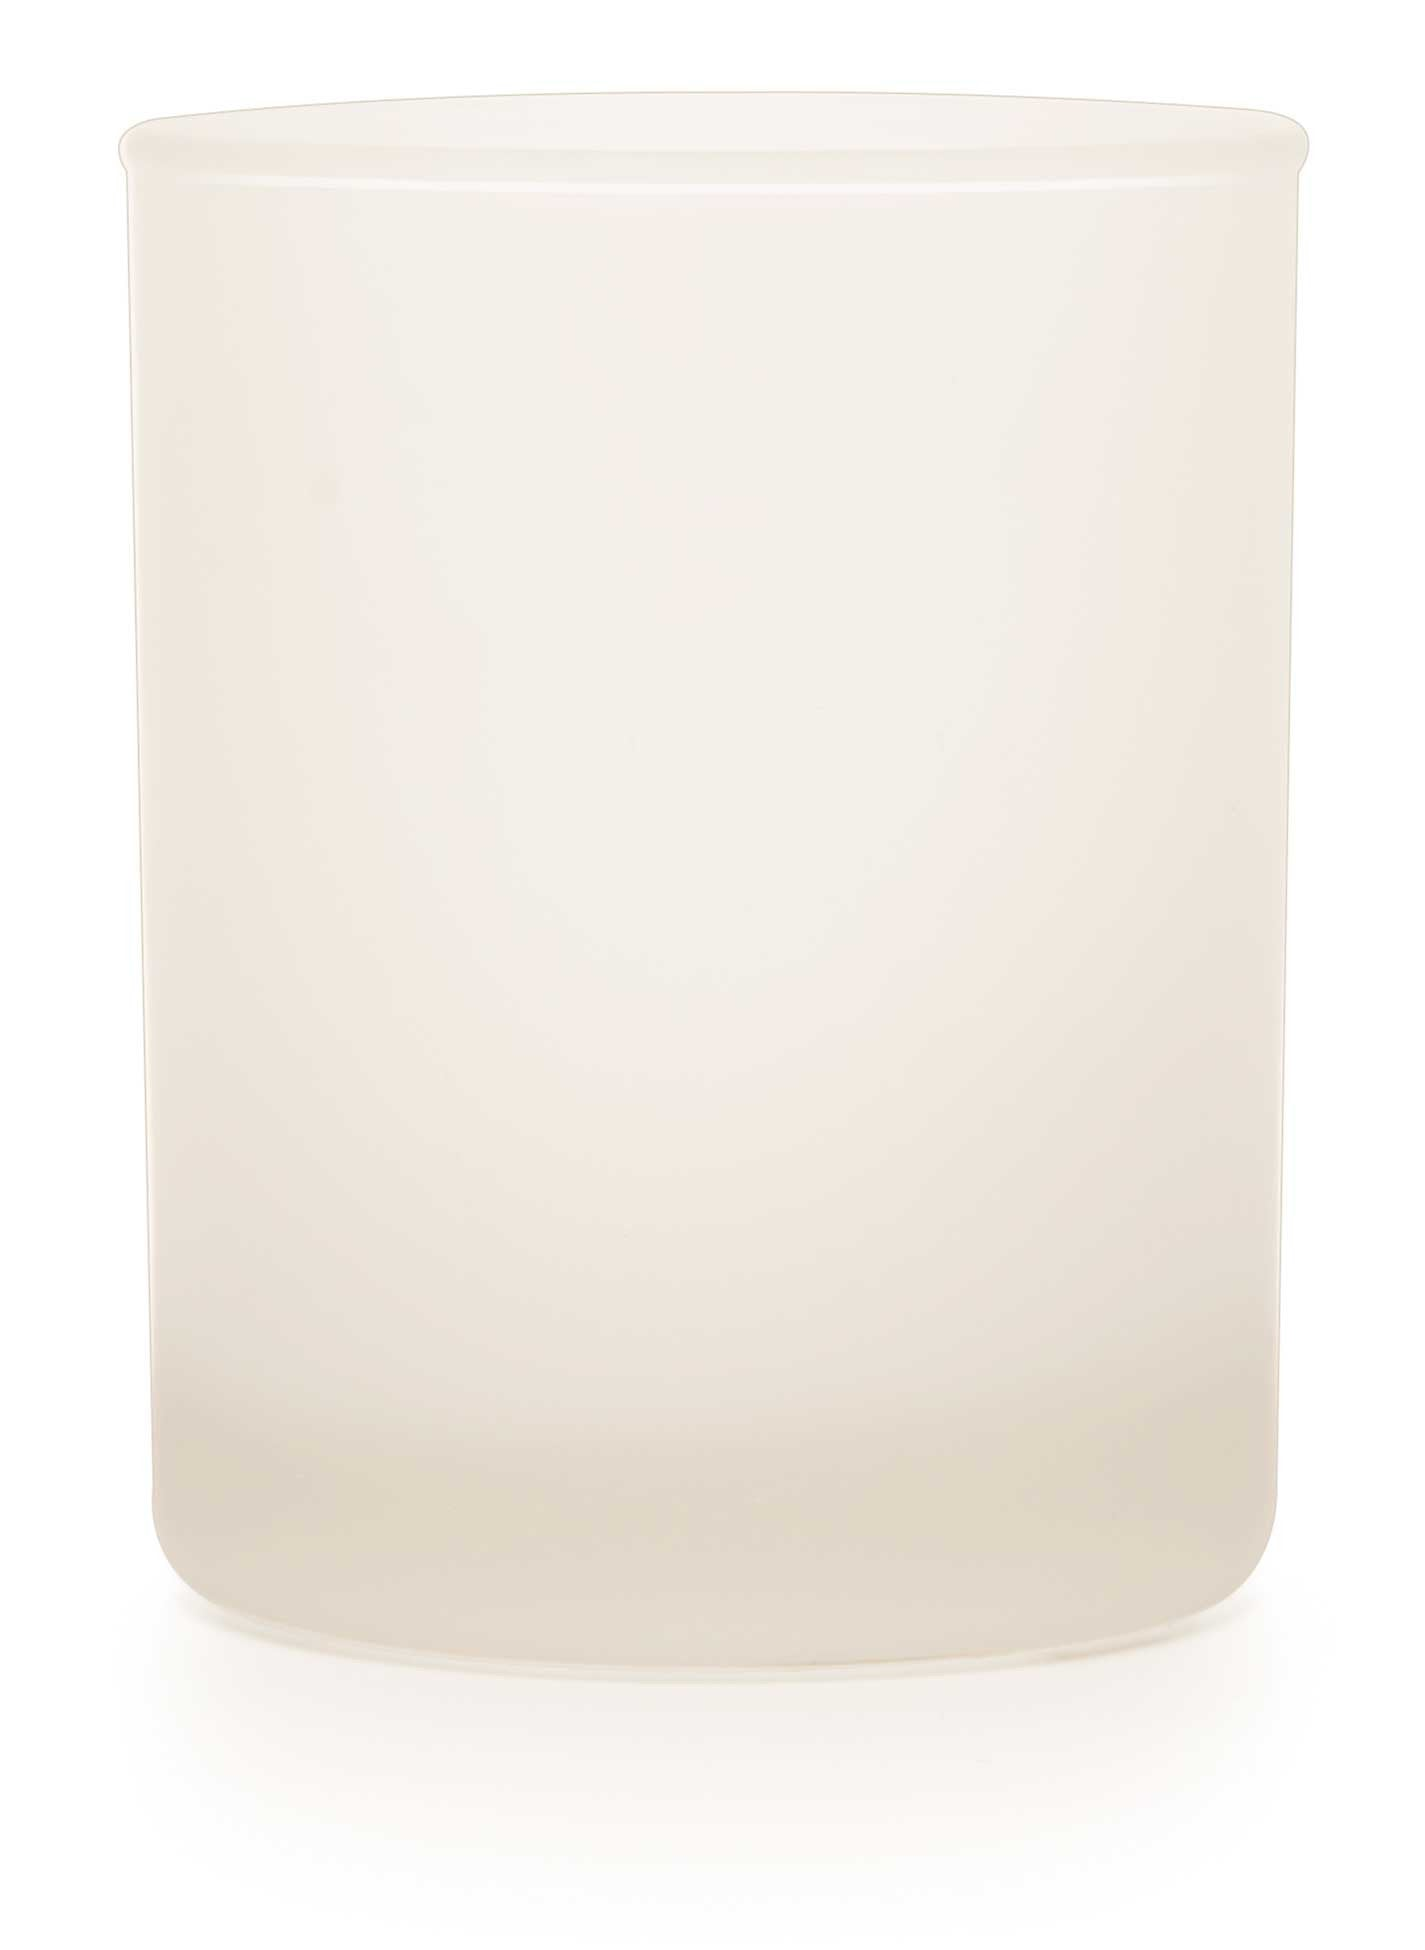 Frosted Tumbler (Unprinted Case of 6) - WeddingCandles.com